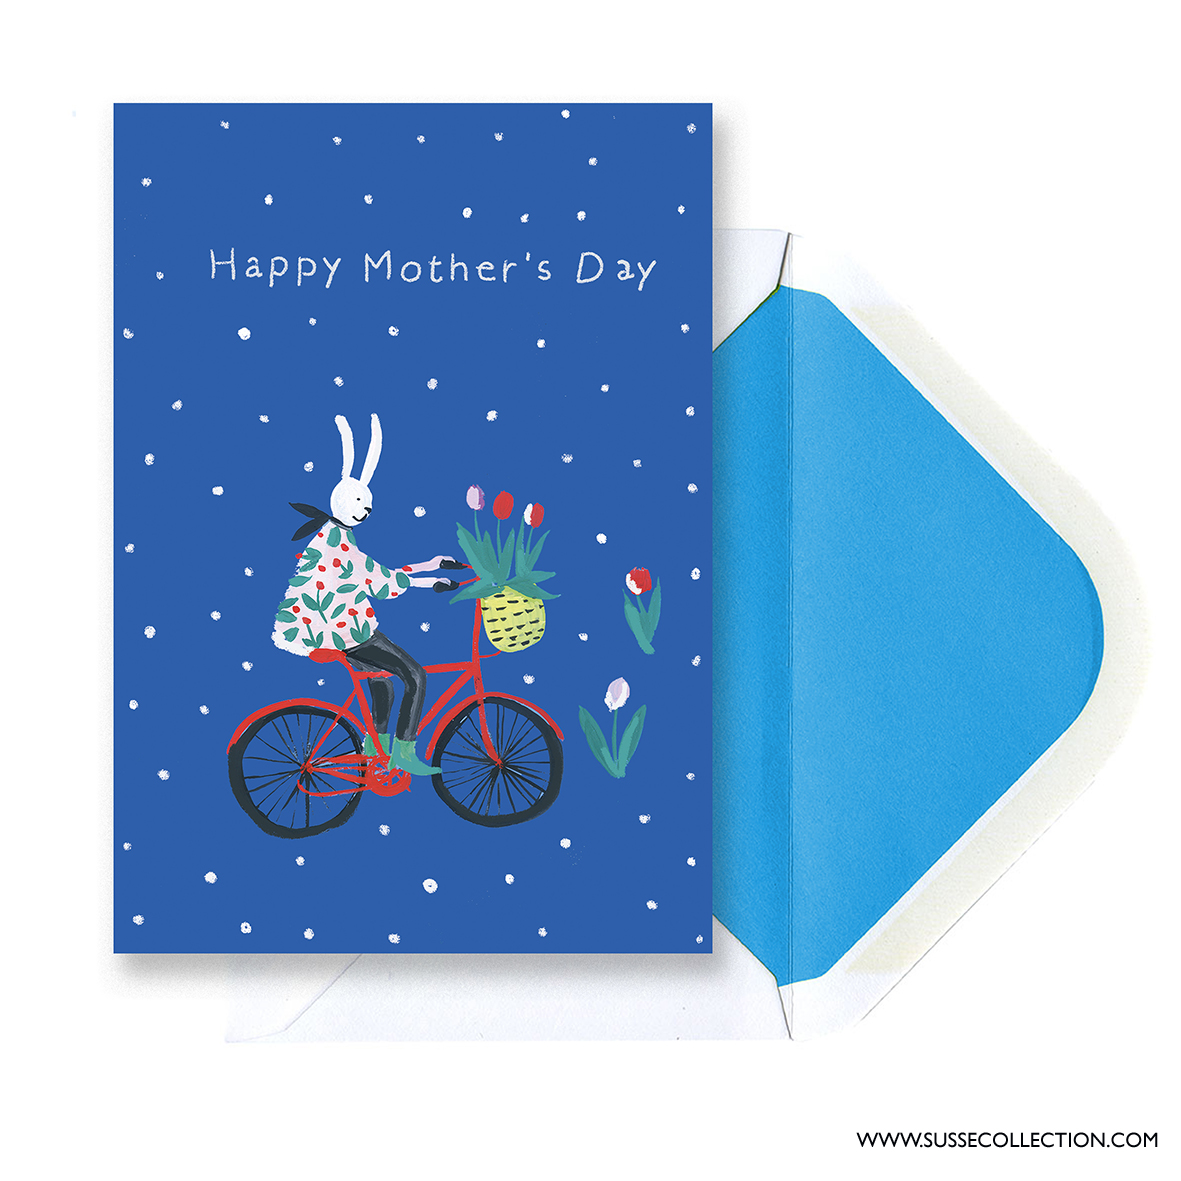 Happy Mother's dayl Susse Collection.jpg